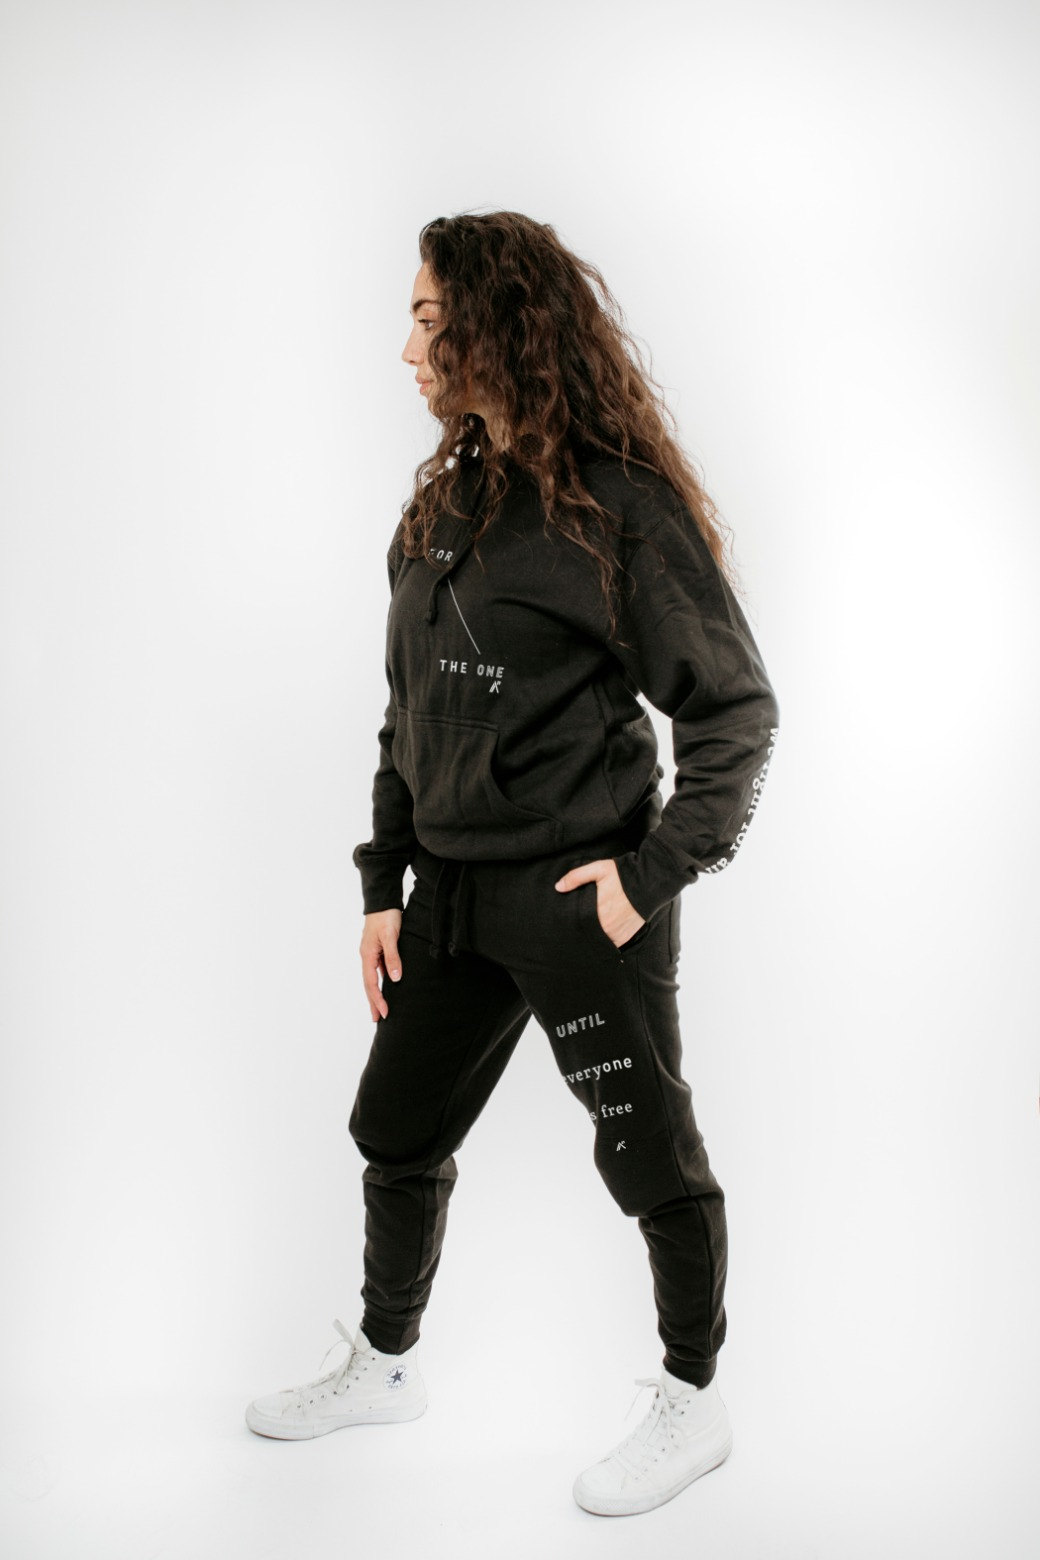 Tracksuit: Sweatshirt and Trackpants: For The ONE 1